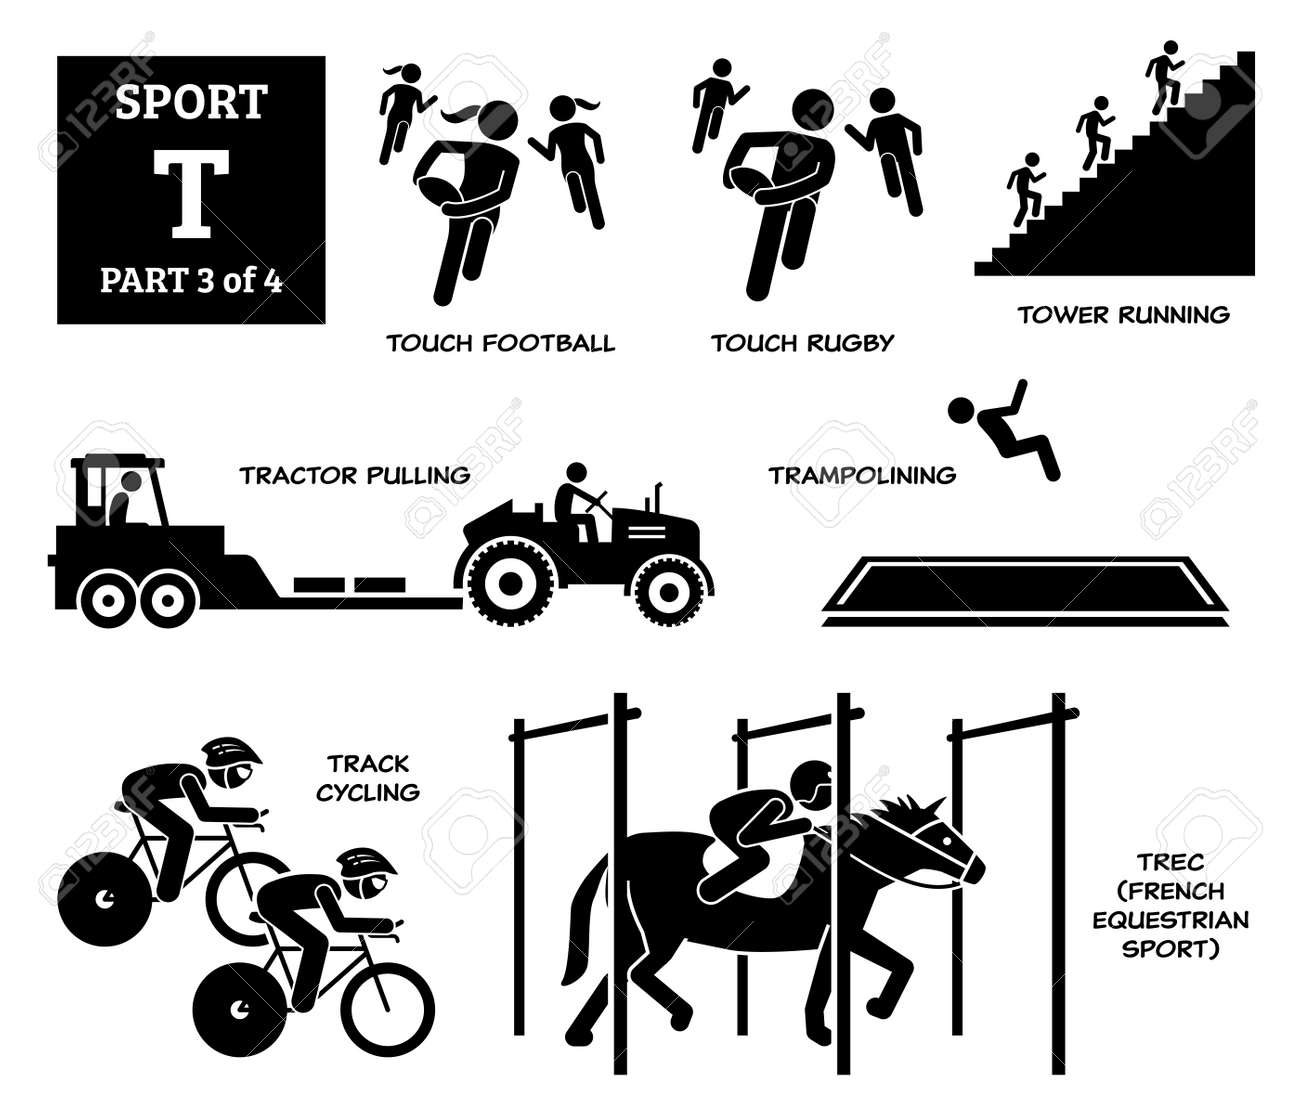 Sport games alphabet T vector icons pictogram. Touch football, touch rugby, tower running, tractor pulling, trampolining, track cycling, and TREC French equestrian sport. - 172241758